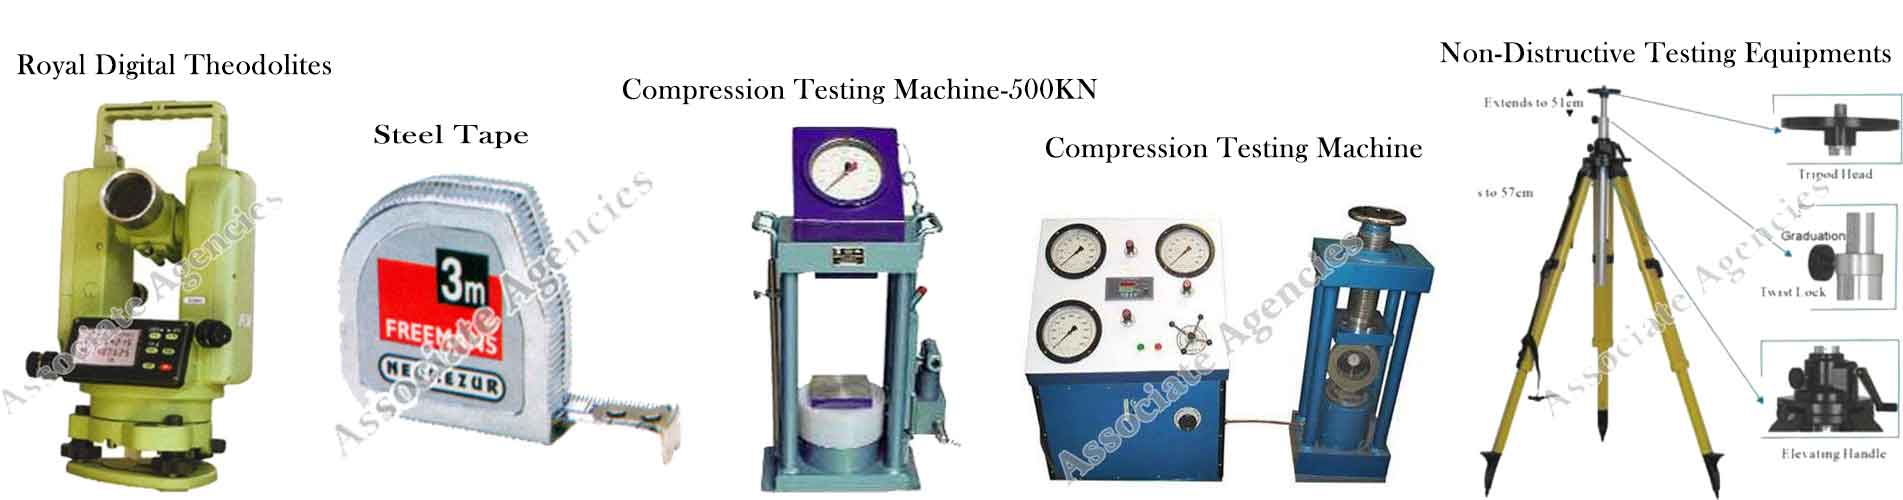 Compressive Test Machine In Gujarat ,  Automatic Level In Gujarat, Coating Thickness Gauge In Gujarat, Bursting Strength Tester In Gujarat, Surveying Instruments In Gujarat